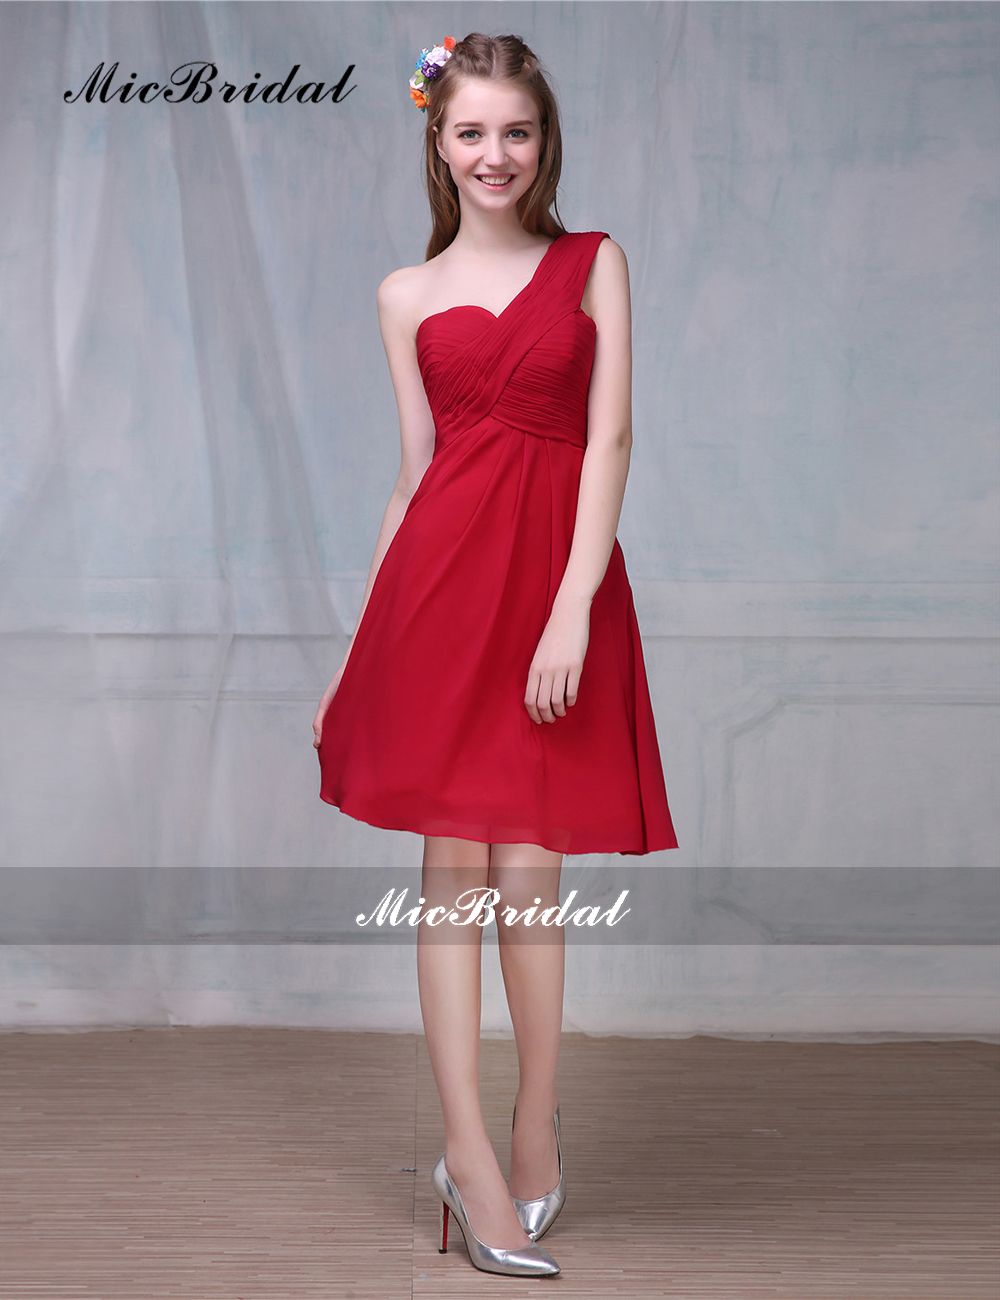 Micbridal 2016 new arrival one shoulder junior bridesmaid dress micbridal 2016 new arrival one shoulder junior bridesmaid dress red bruidsmeisjes jurk mz 021 short dresses for wedding party in bridesmaid dresses from ombrellifo Choice Image